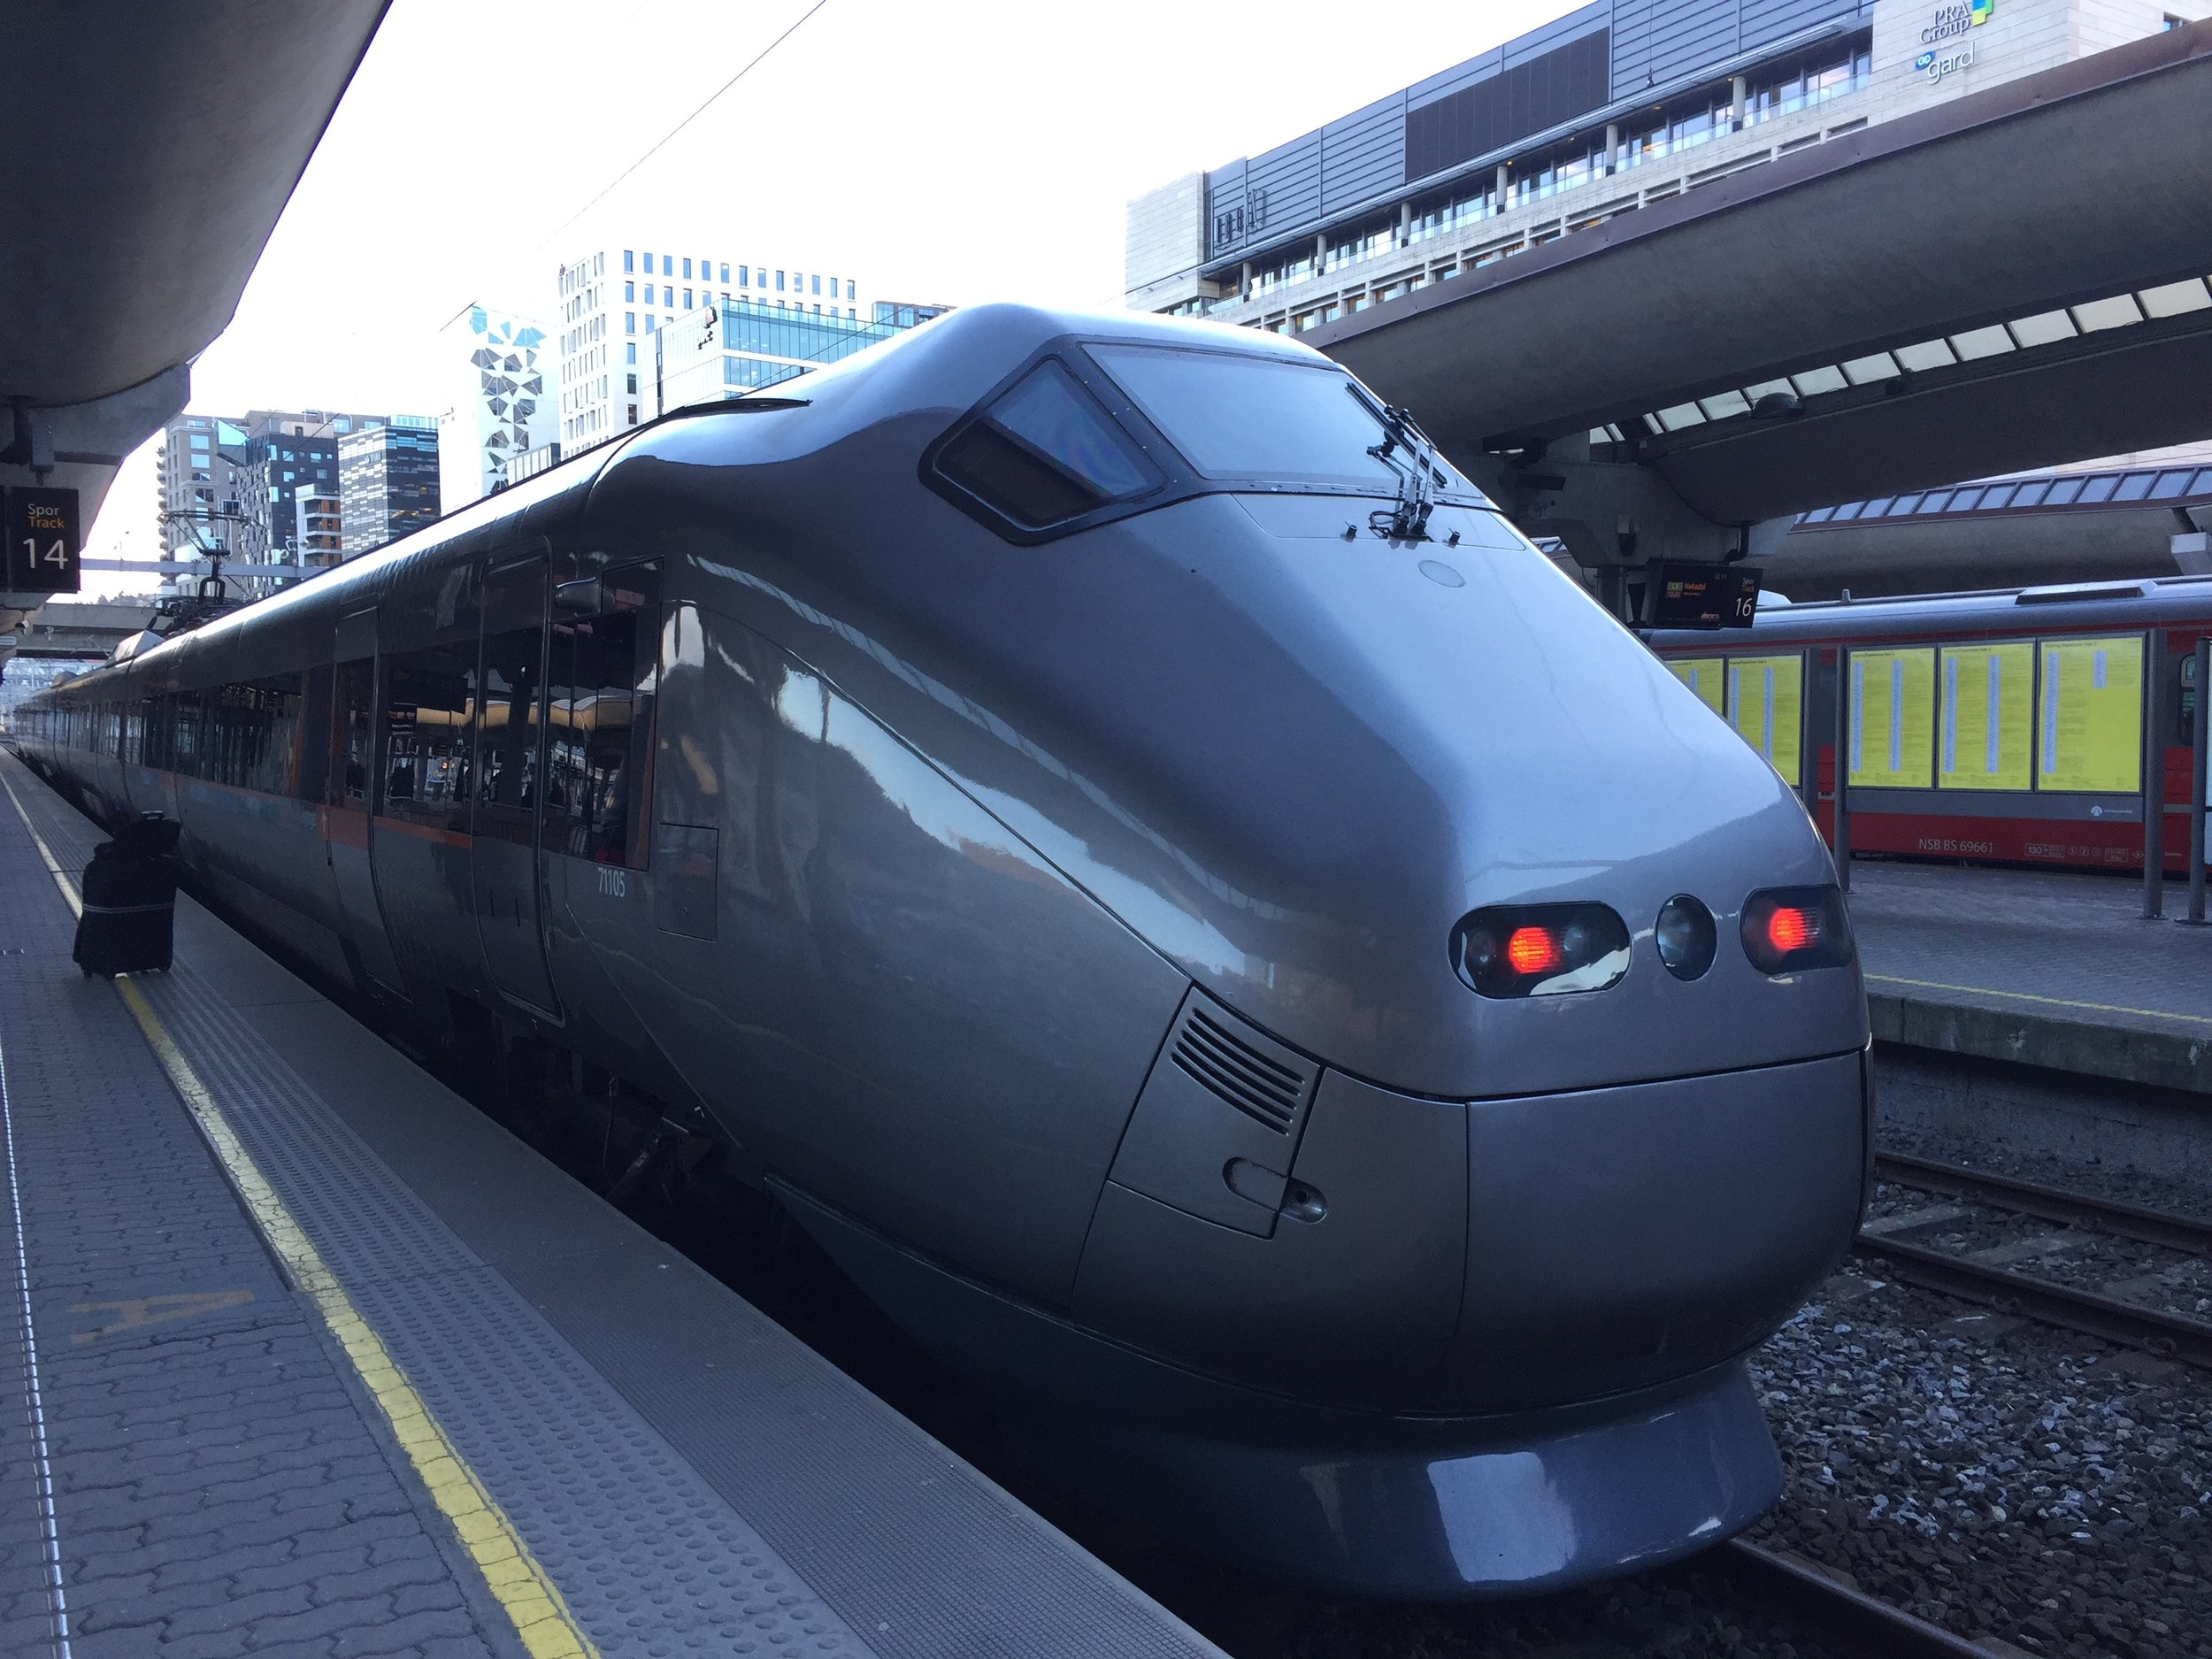 Airport express train, Oslo S